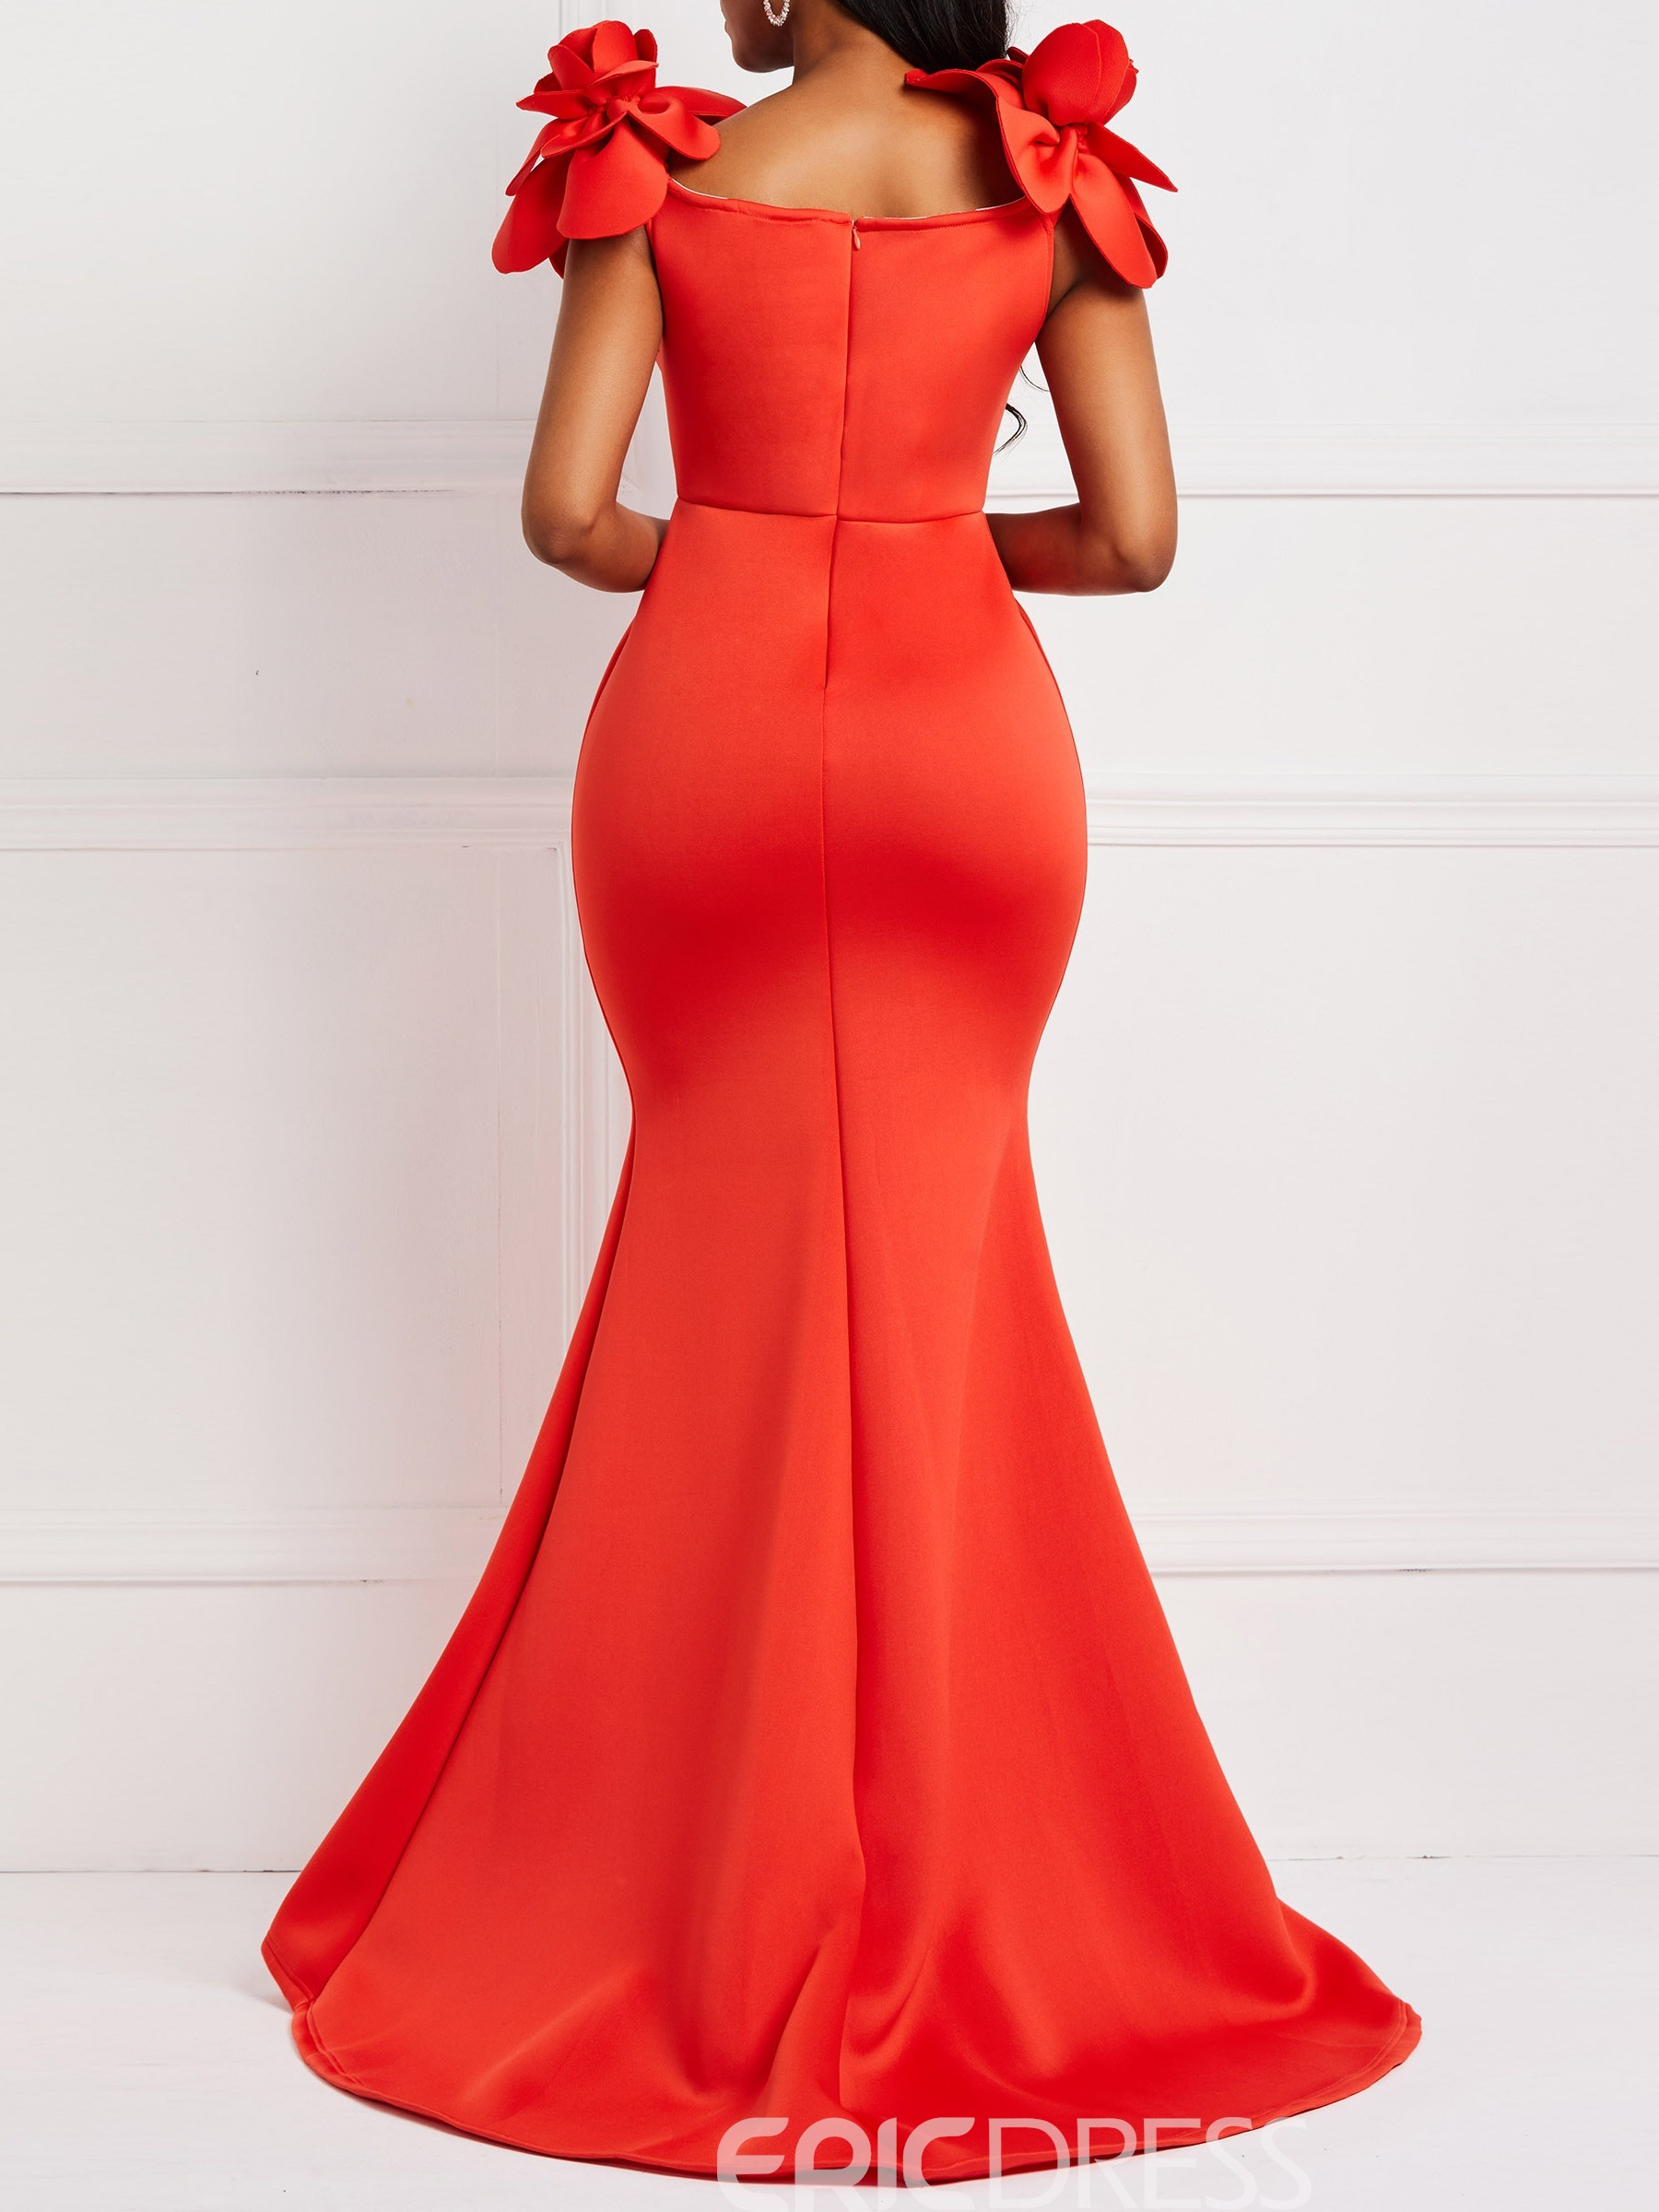 Ericdress Floor-Length Falbala Cap Sleeve Mermaid Bodycon Dress